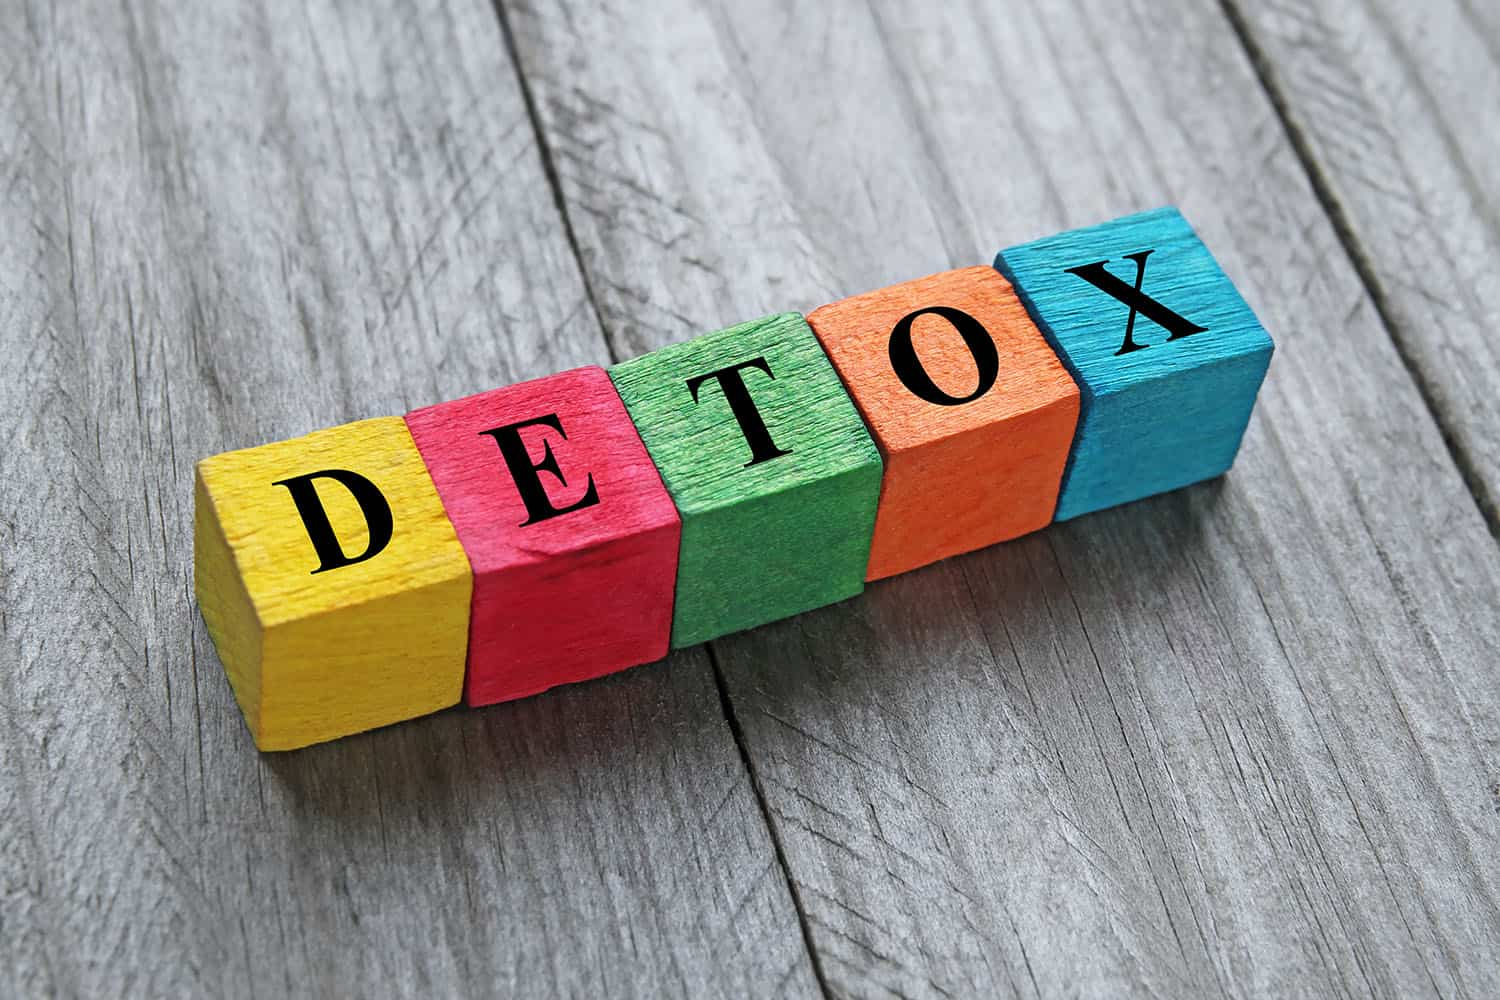 Detoxing in Rehab – What Does Alcohol Detox Look Like?